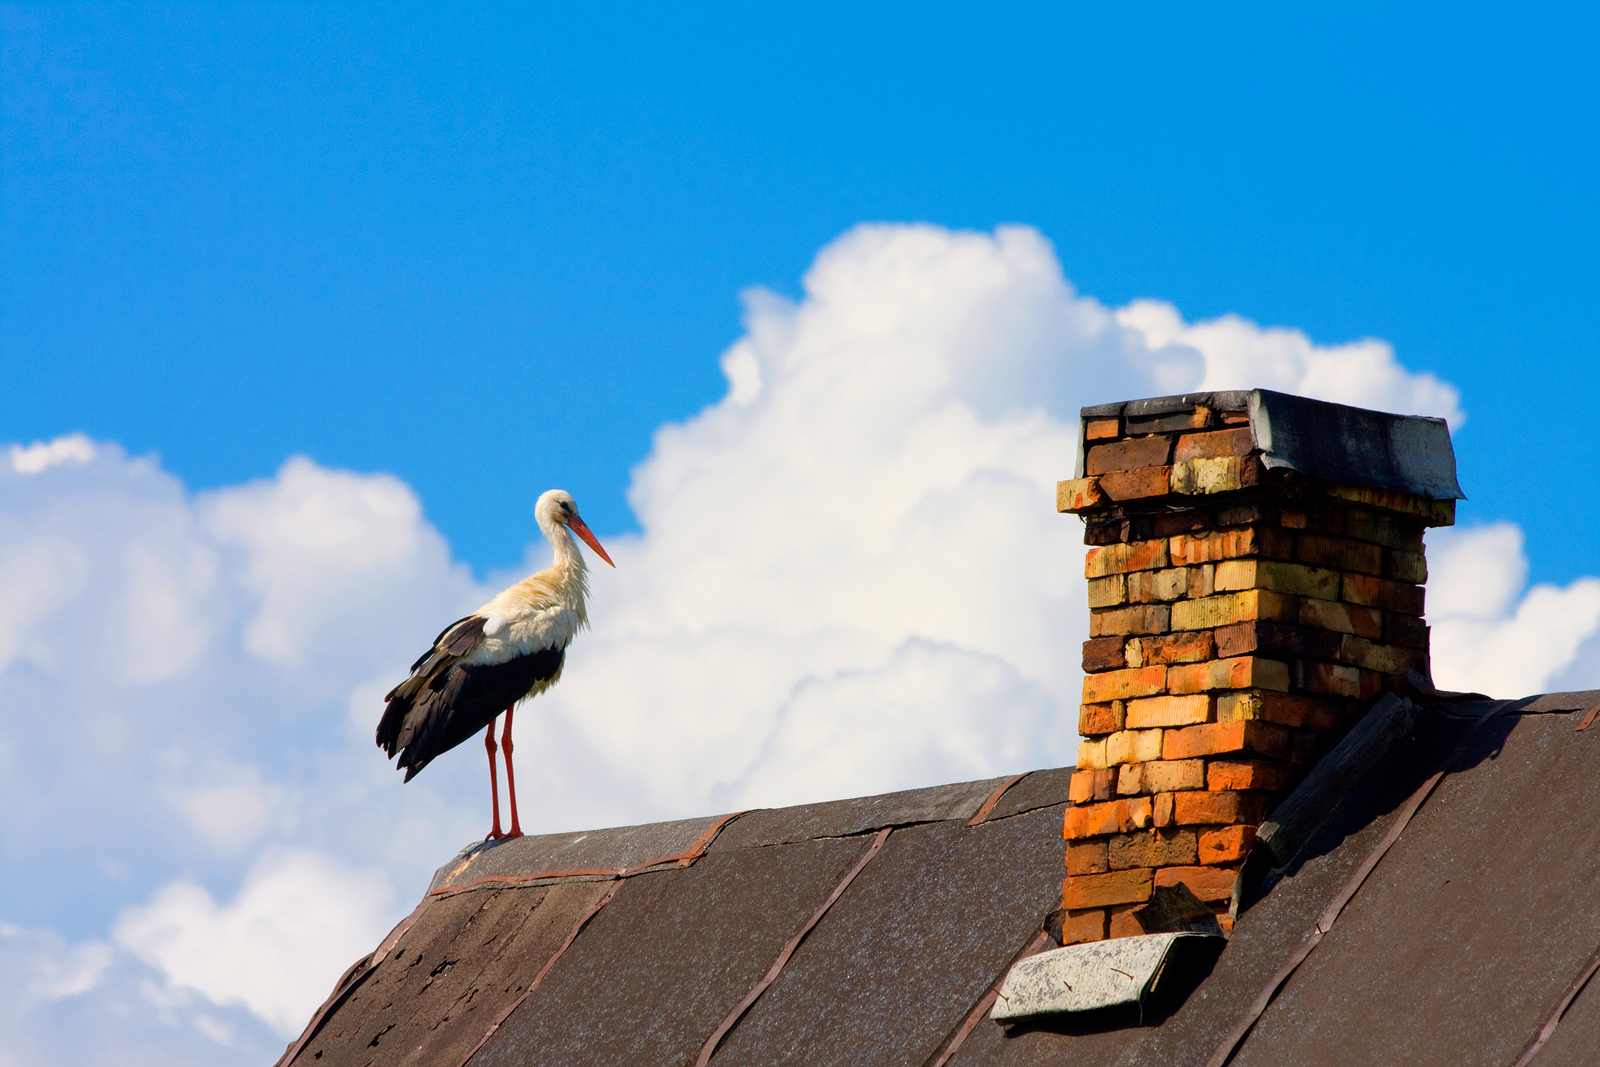 chimney removal cost, avoid chimney repair, masonry chimney safety